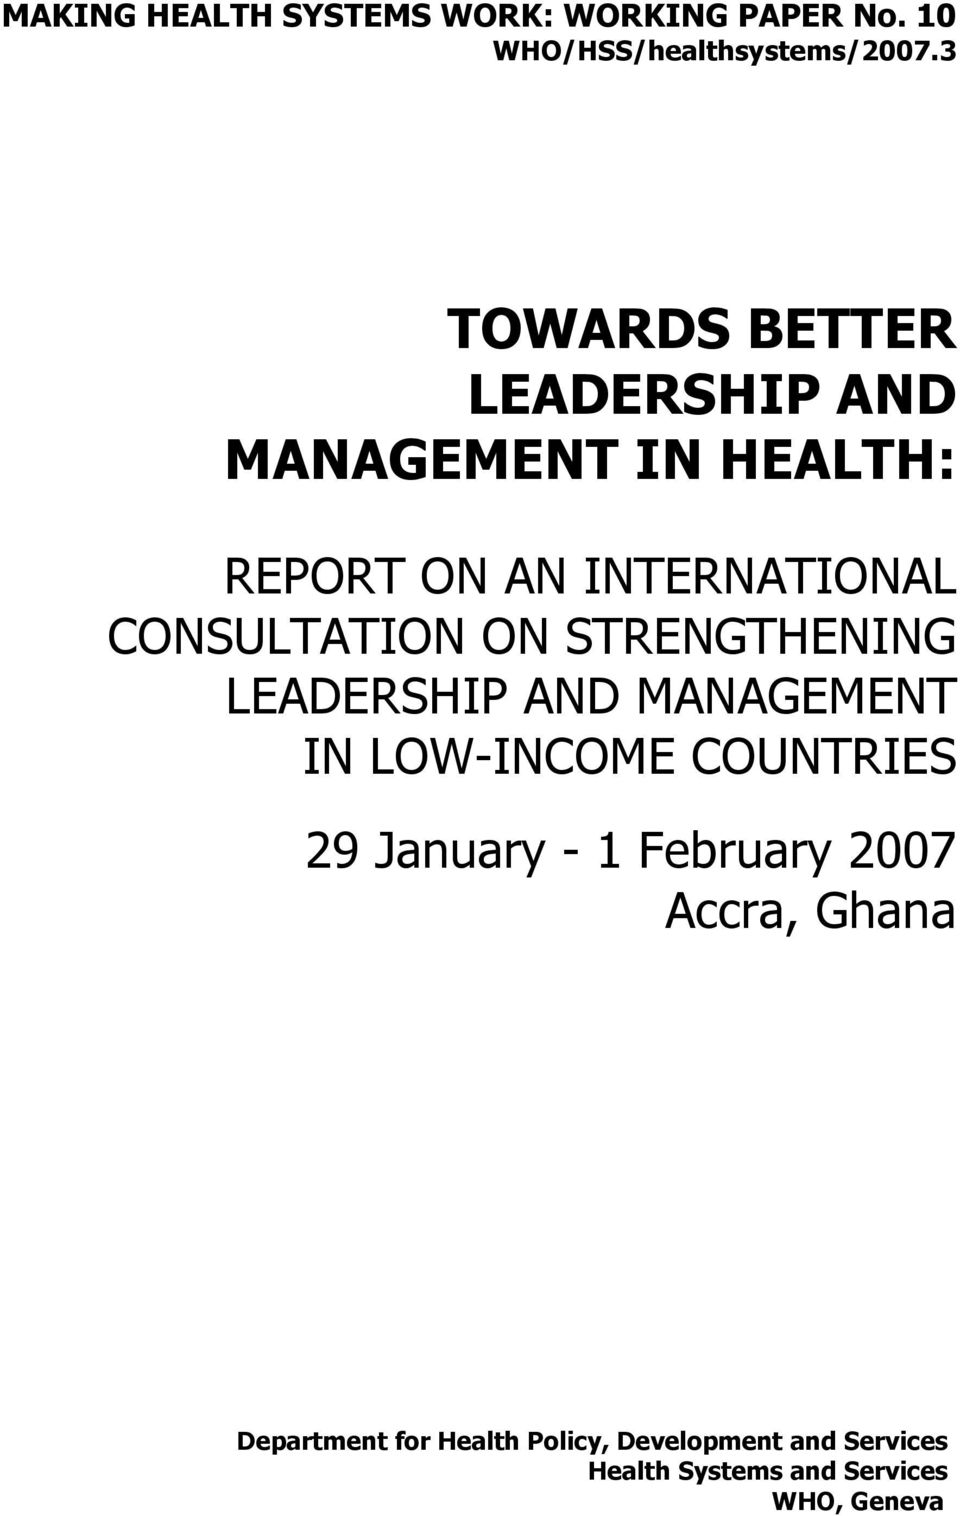 CONSULTATION ON STRENGTHENING LEADERSHIP AND MANAGEMENT IN LOW-INCOME COUNTRIES 29